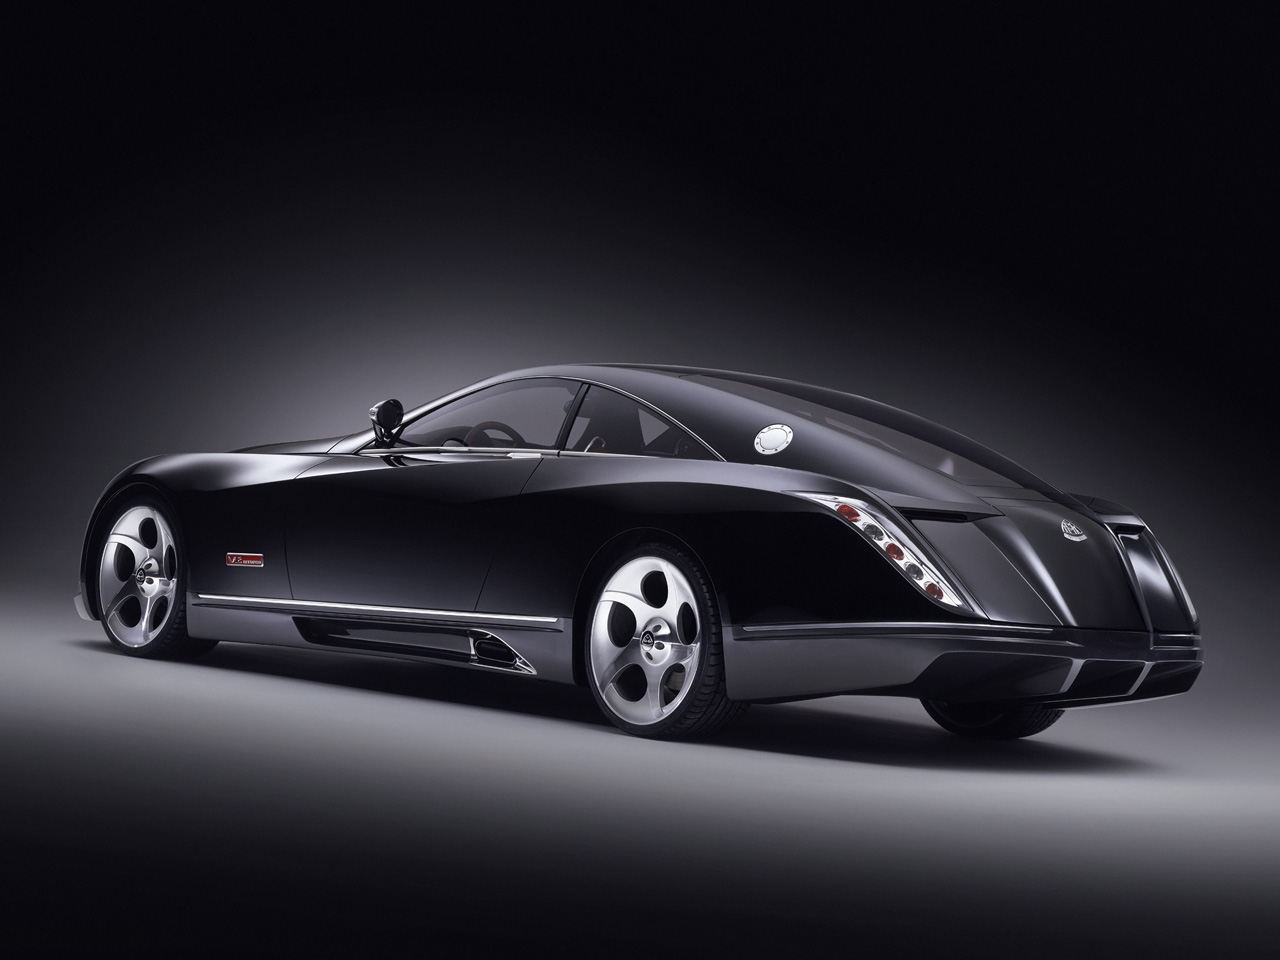 MOST EXPENSIVE CARS IN THE WORLD - 2015: #1 Maybach Exelero - $8M